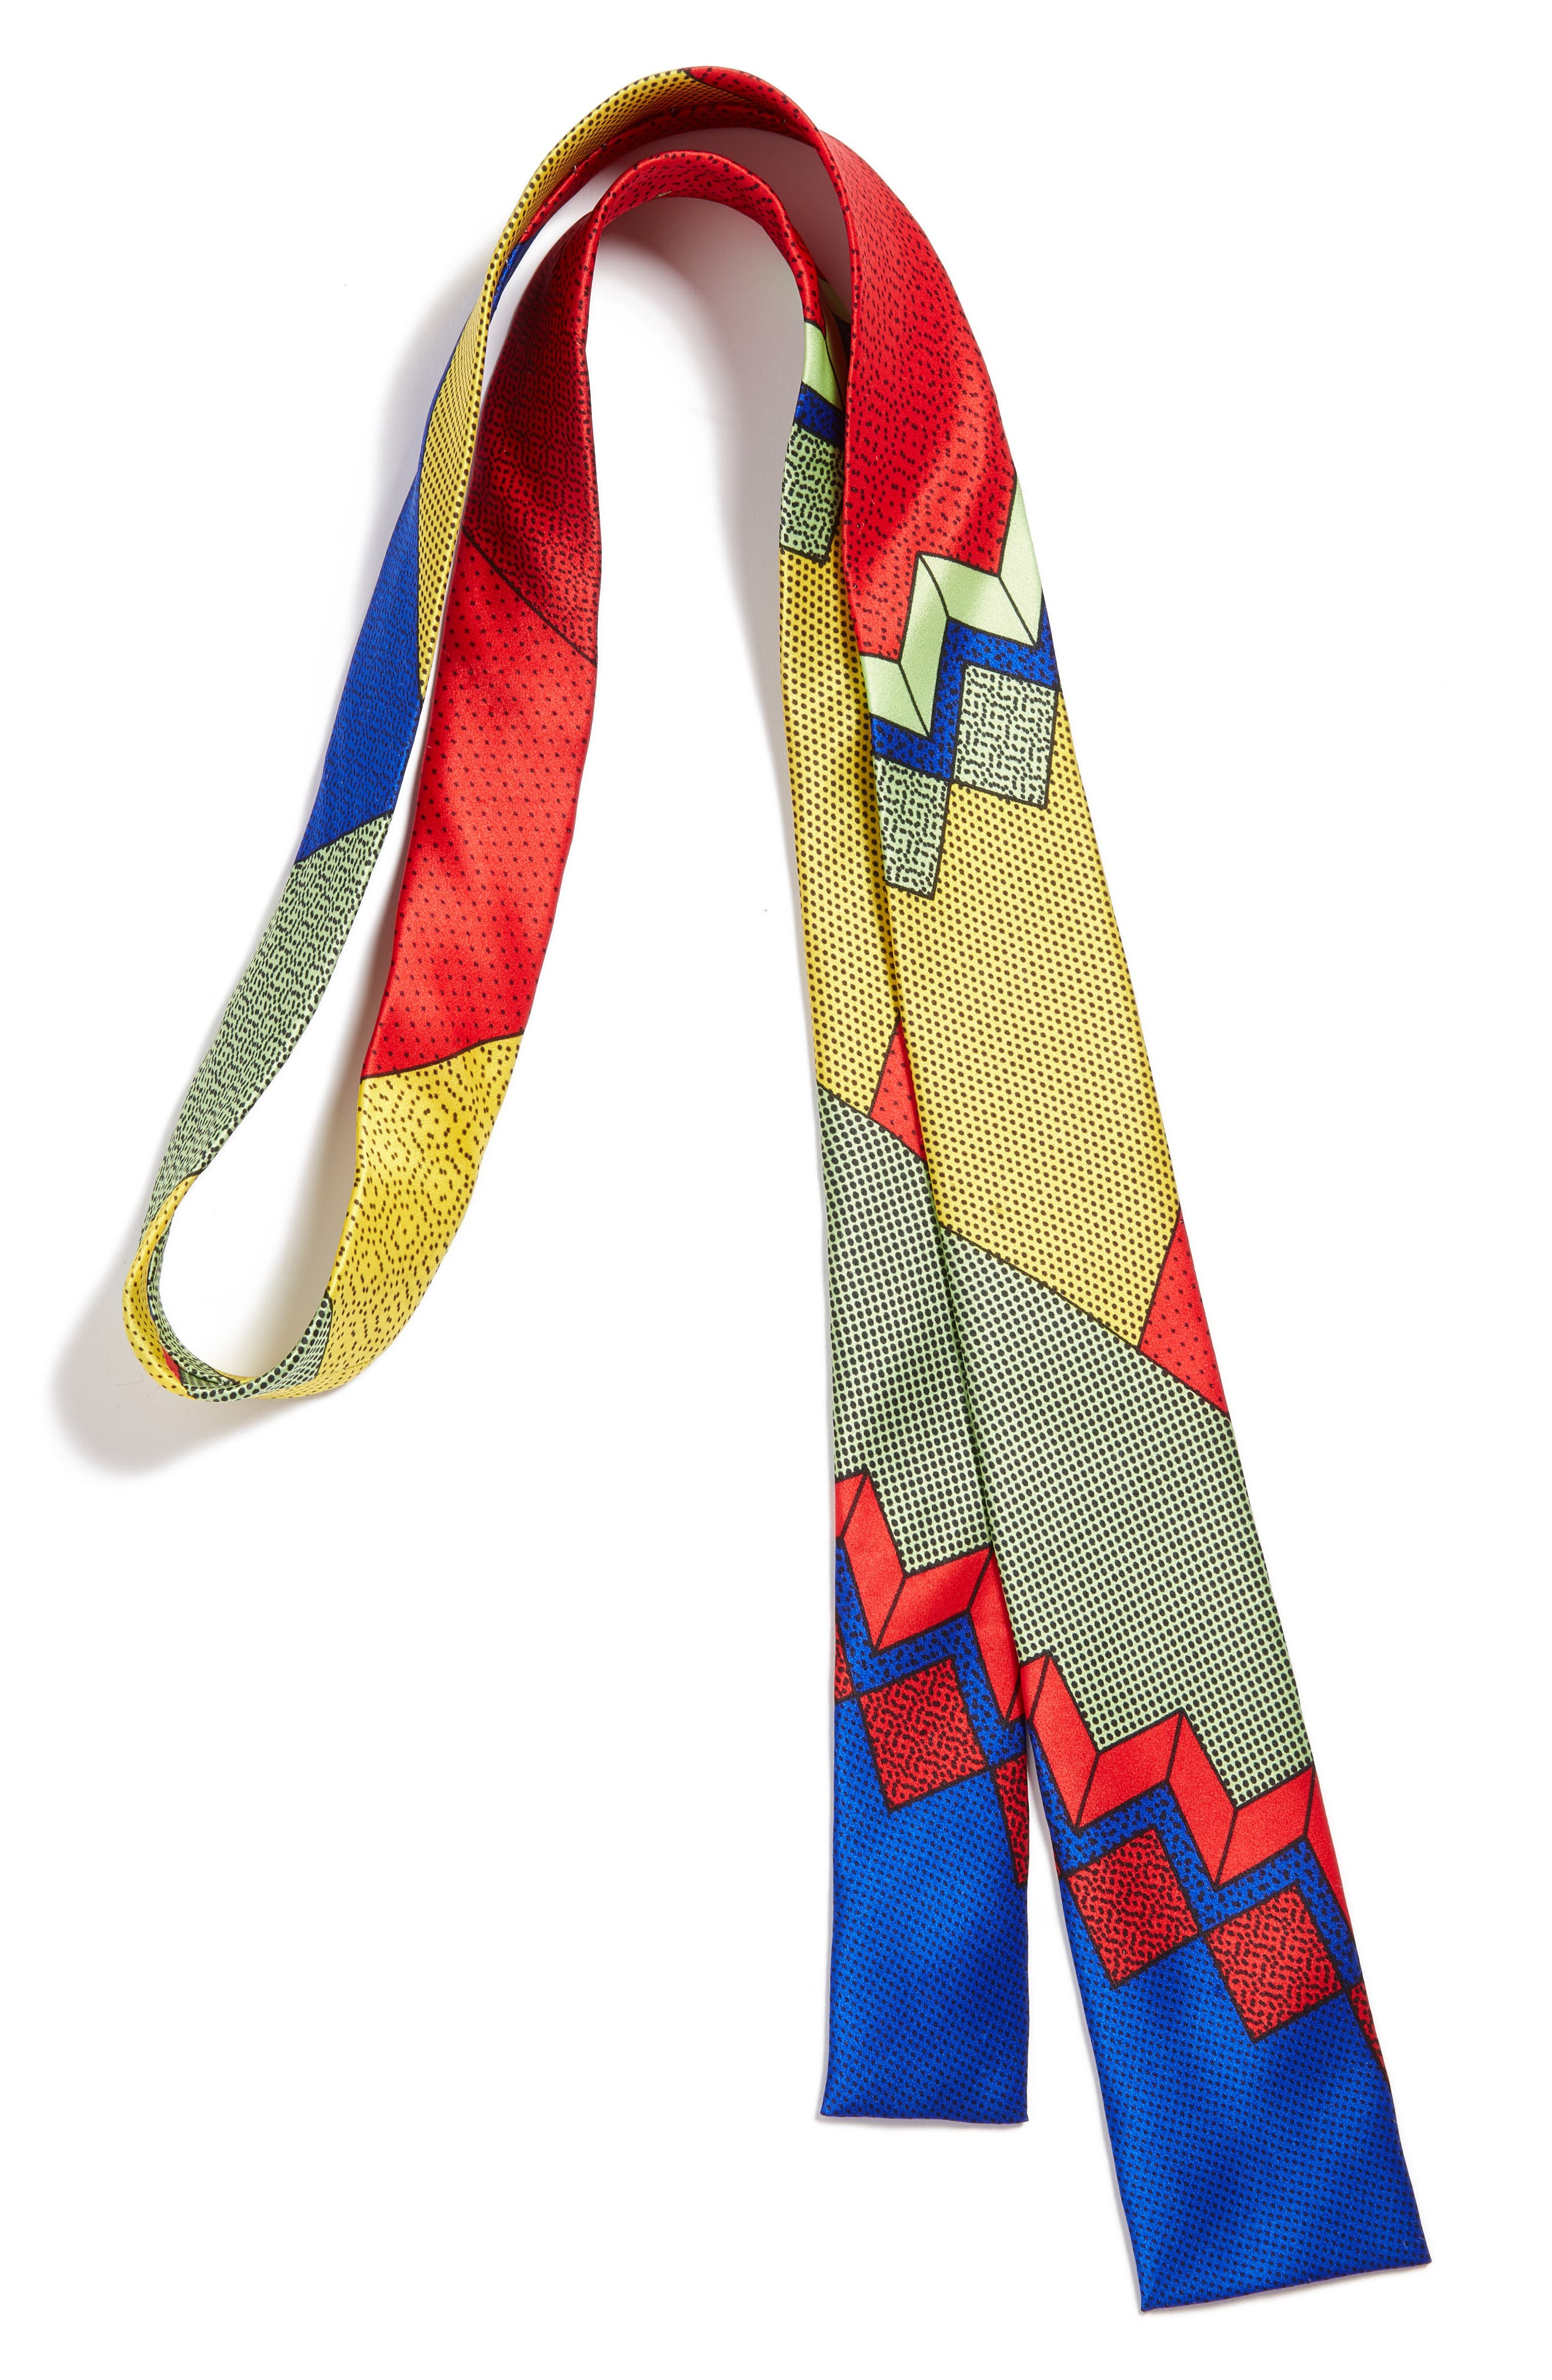 MEMPHIS Milano Red/Blue Print Silk Tie,                             Main thumbnail 1, color,                             600